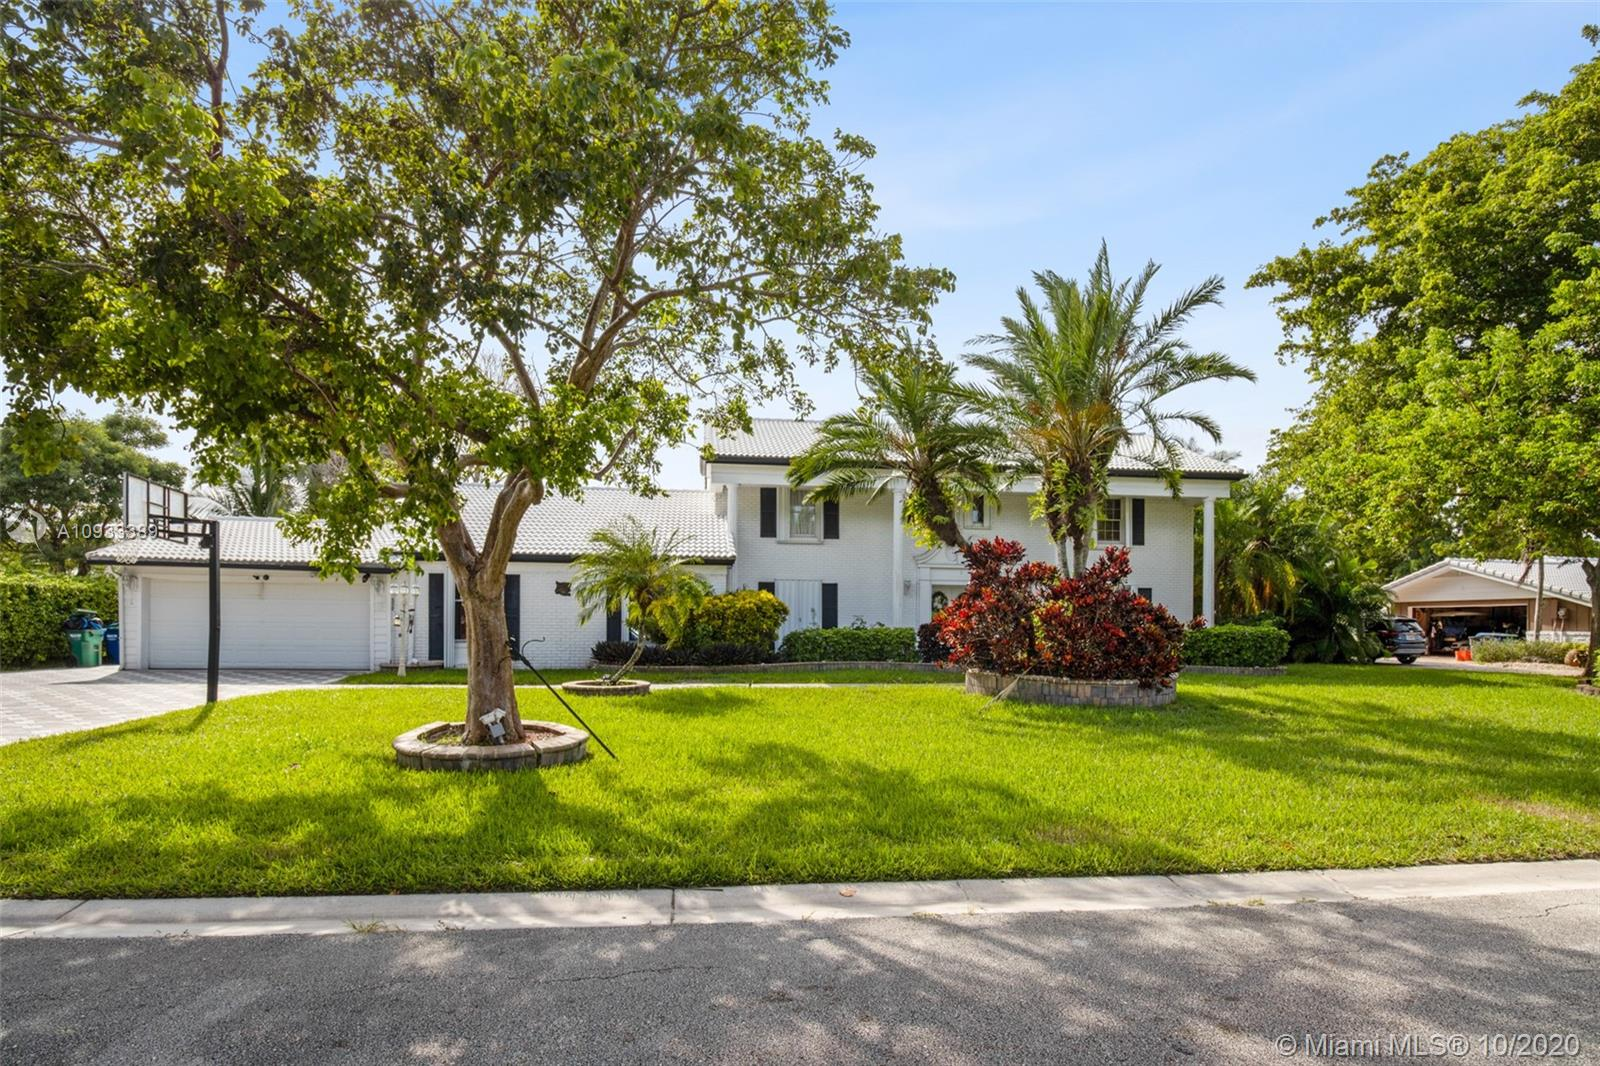 Coral Springs, 3100 NW 107th Ave, Coral Springs, Florida 33065